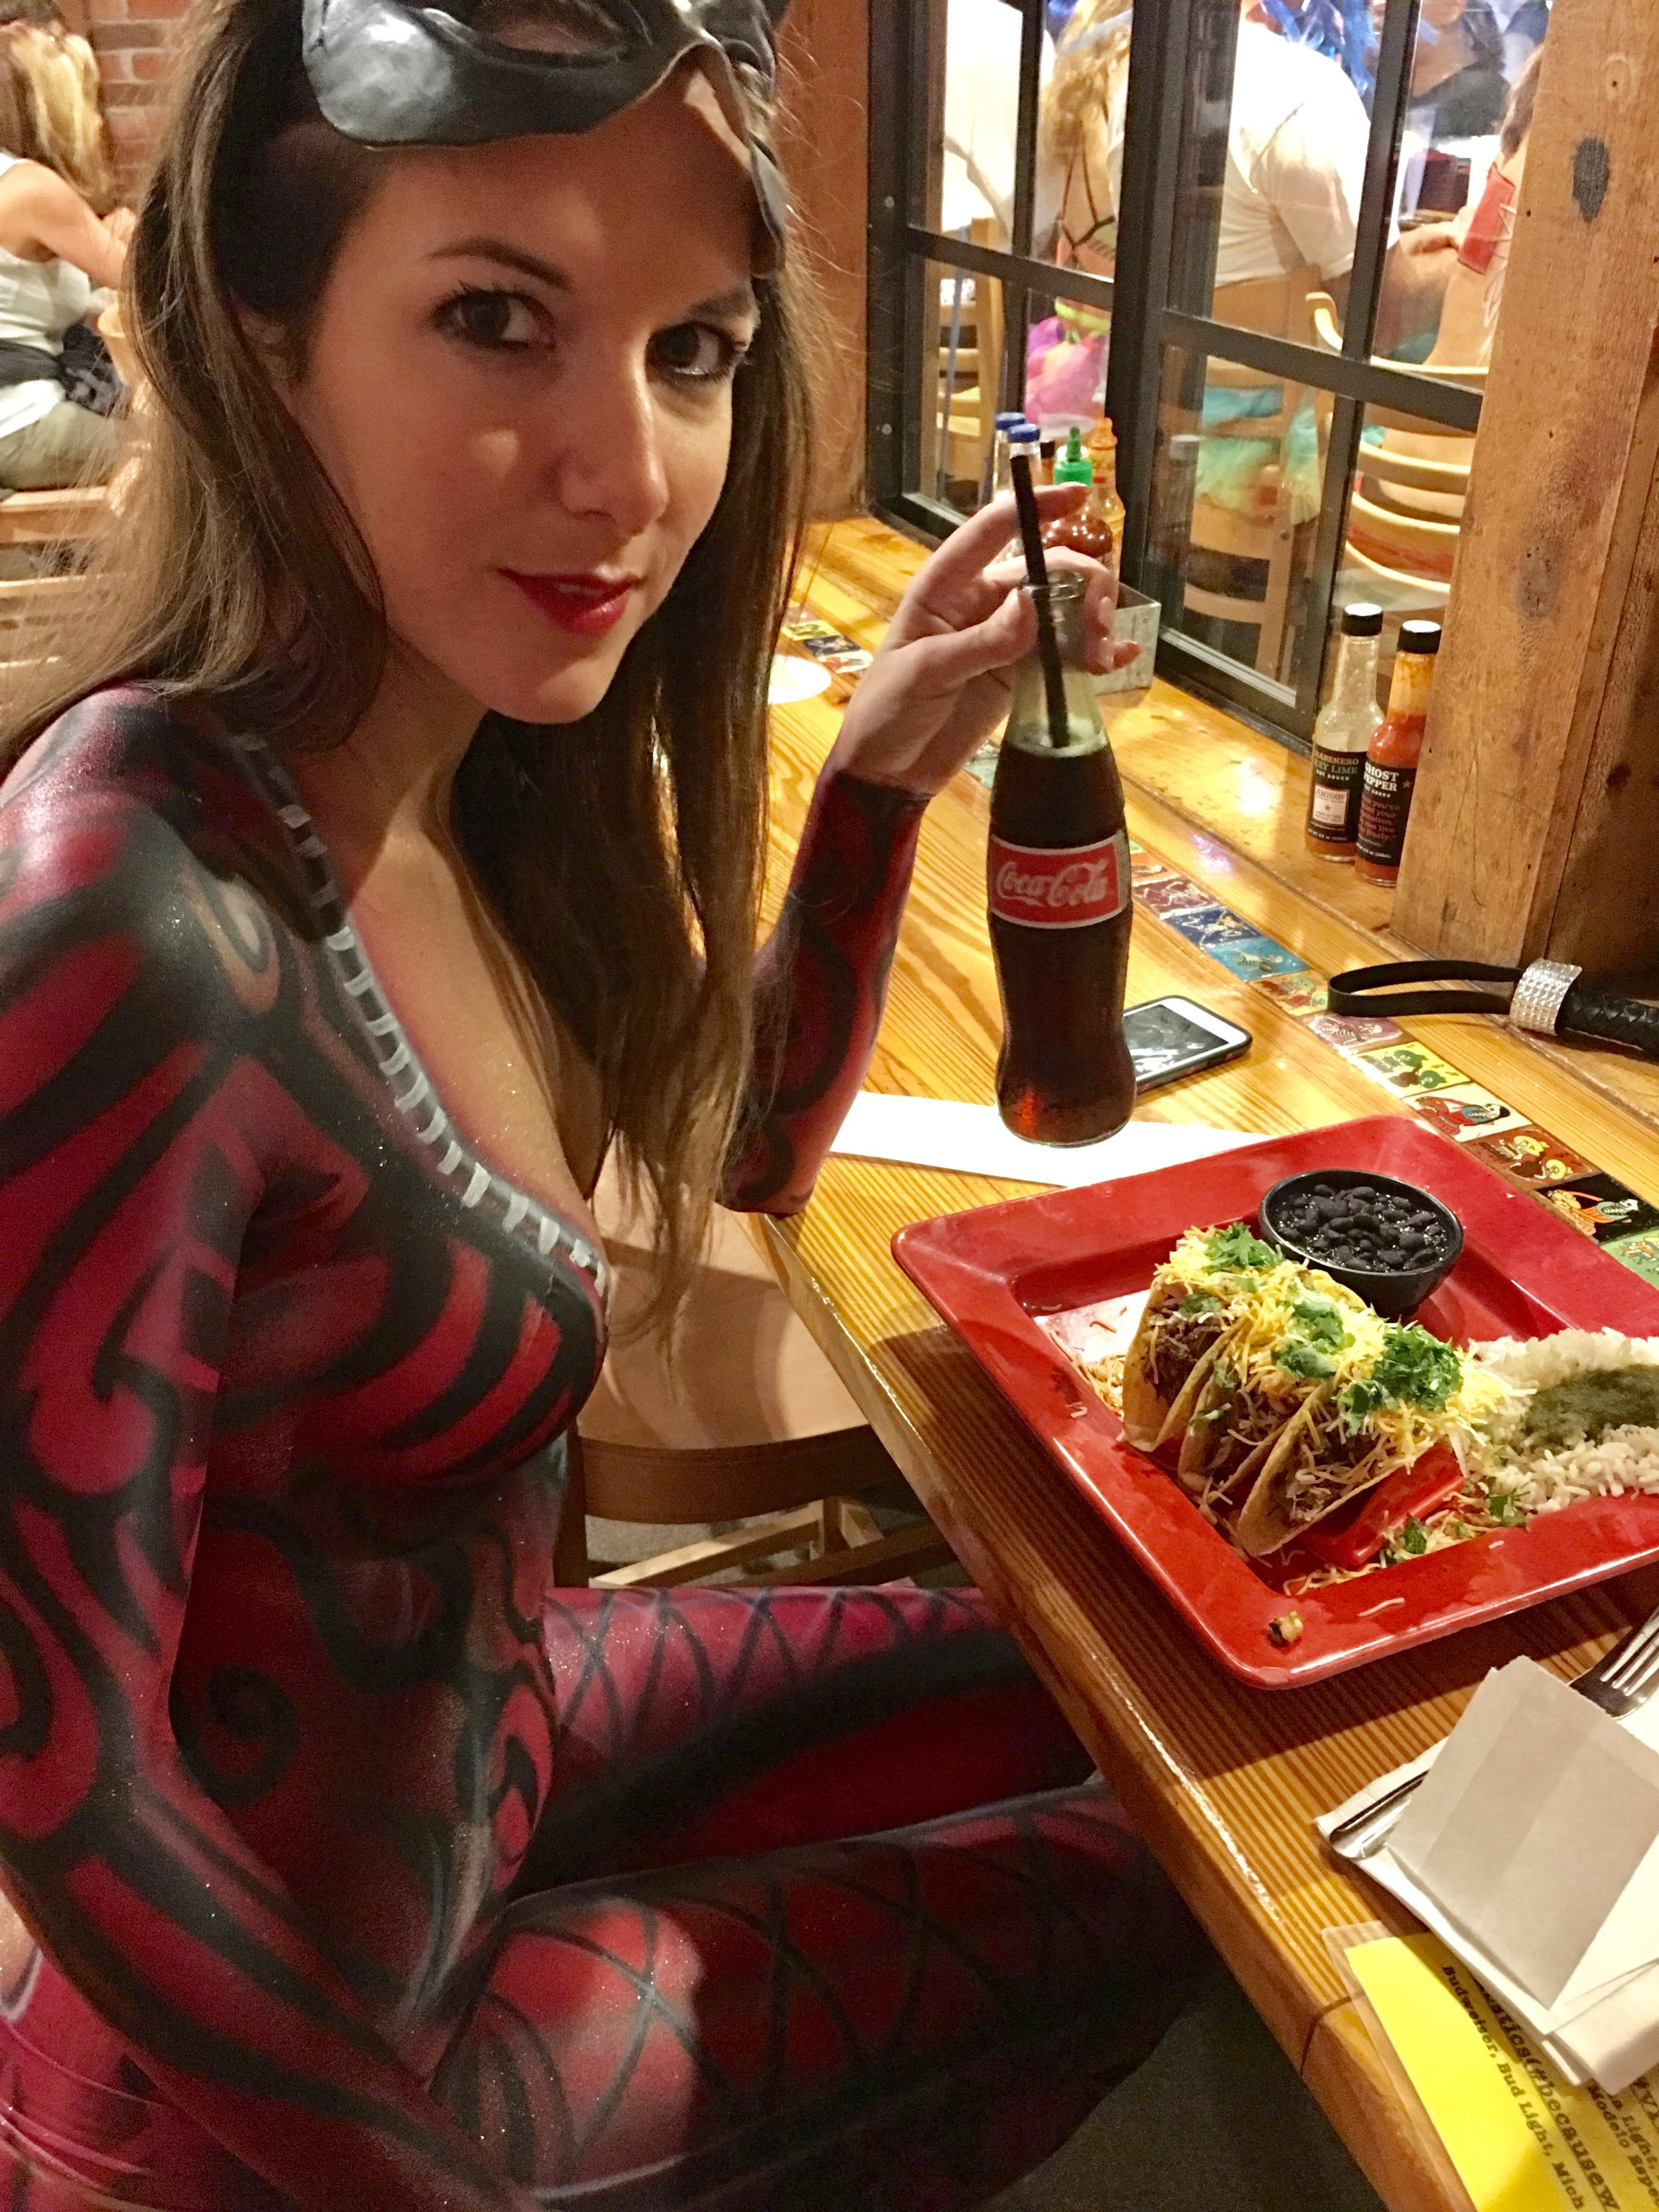 Alessandra Torre - Late dinner at Amigos Tortilla - the best tacos in Key West! And they didn't even blink at my body paint...